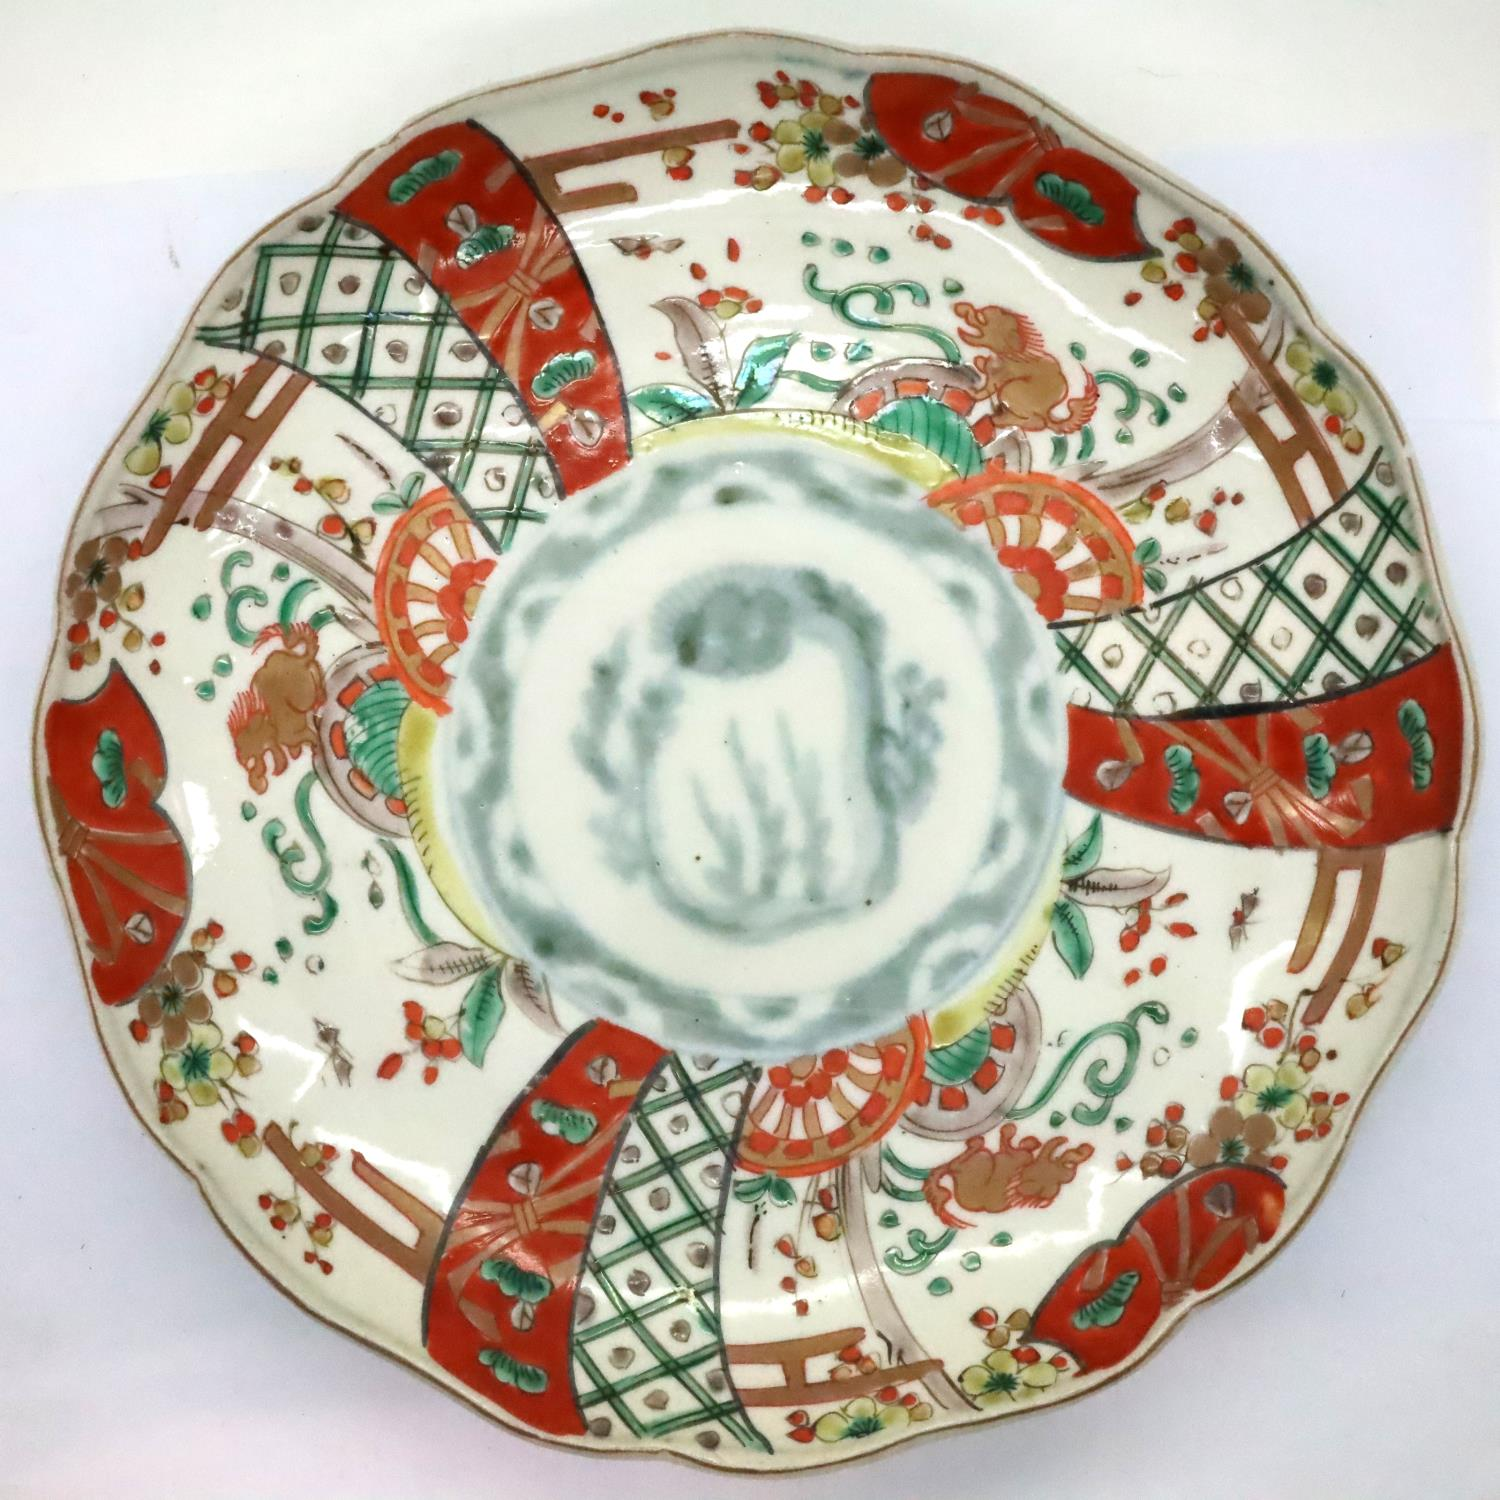 Japanese 19th century cabinet plate, D: 21 cm. P&P Group 2 (£18+VAT for the first lot and £3+VAT for